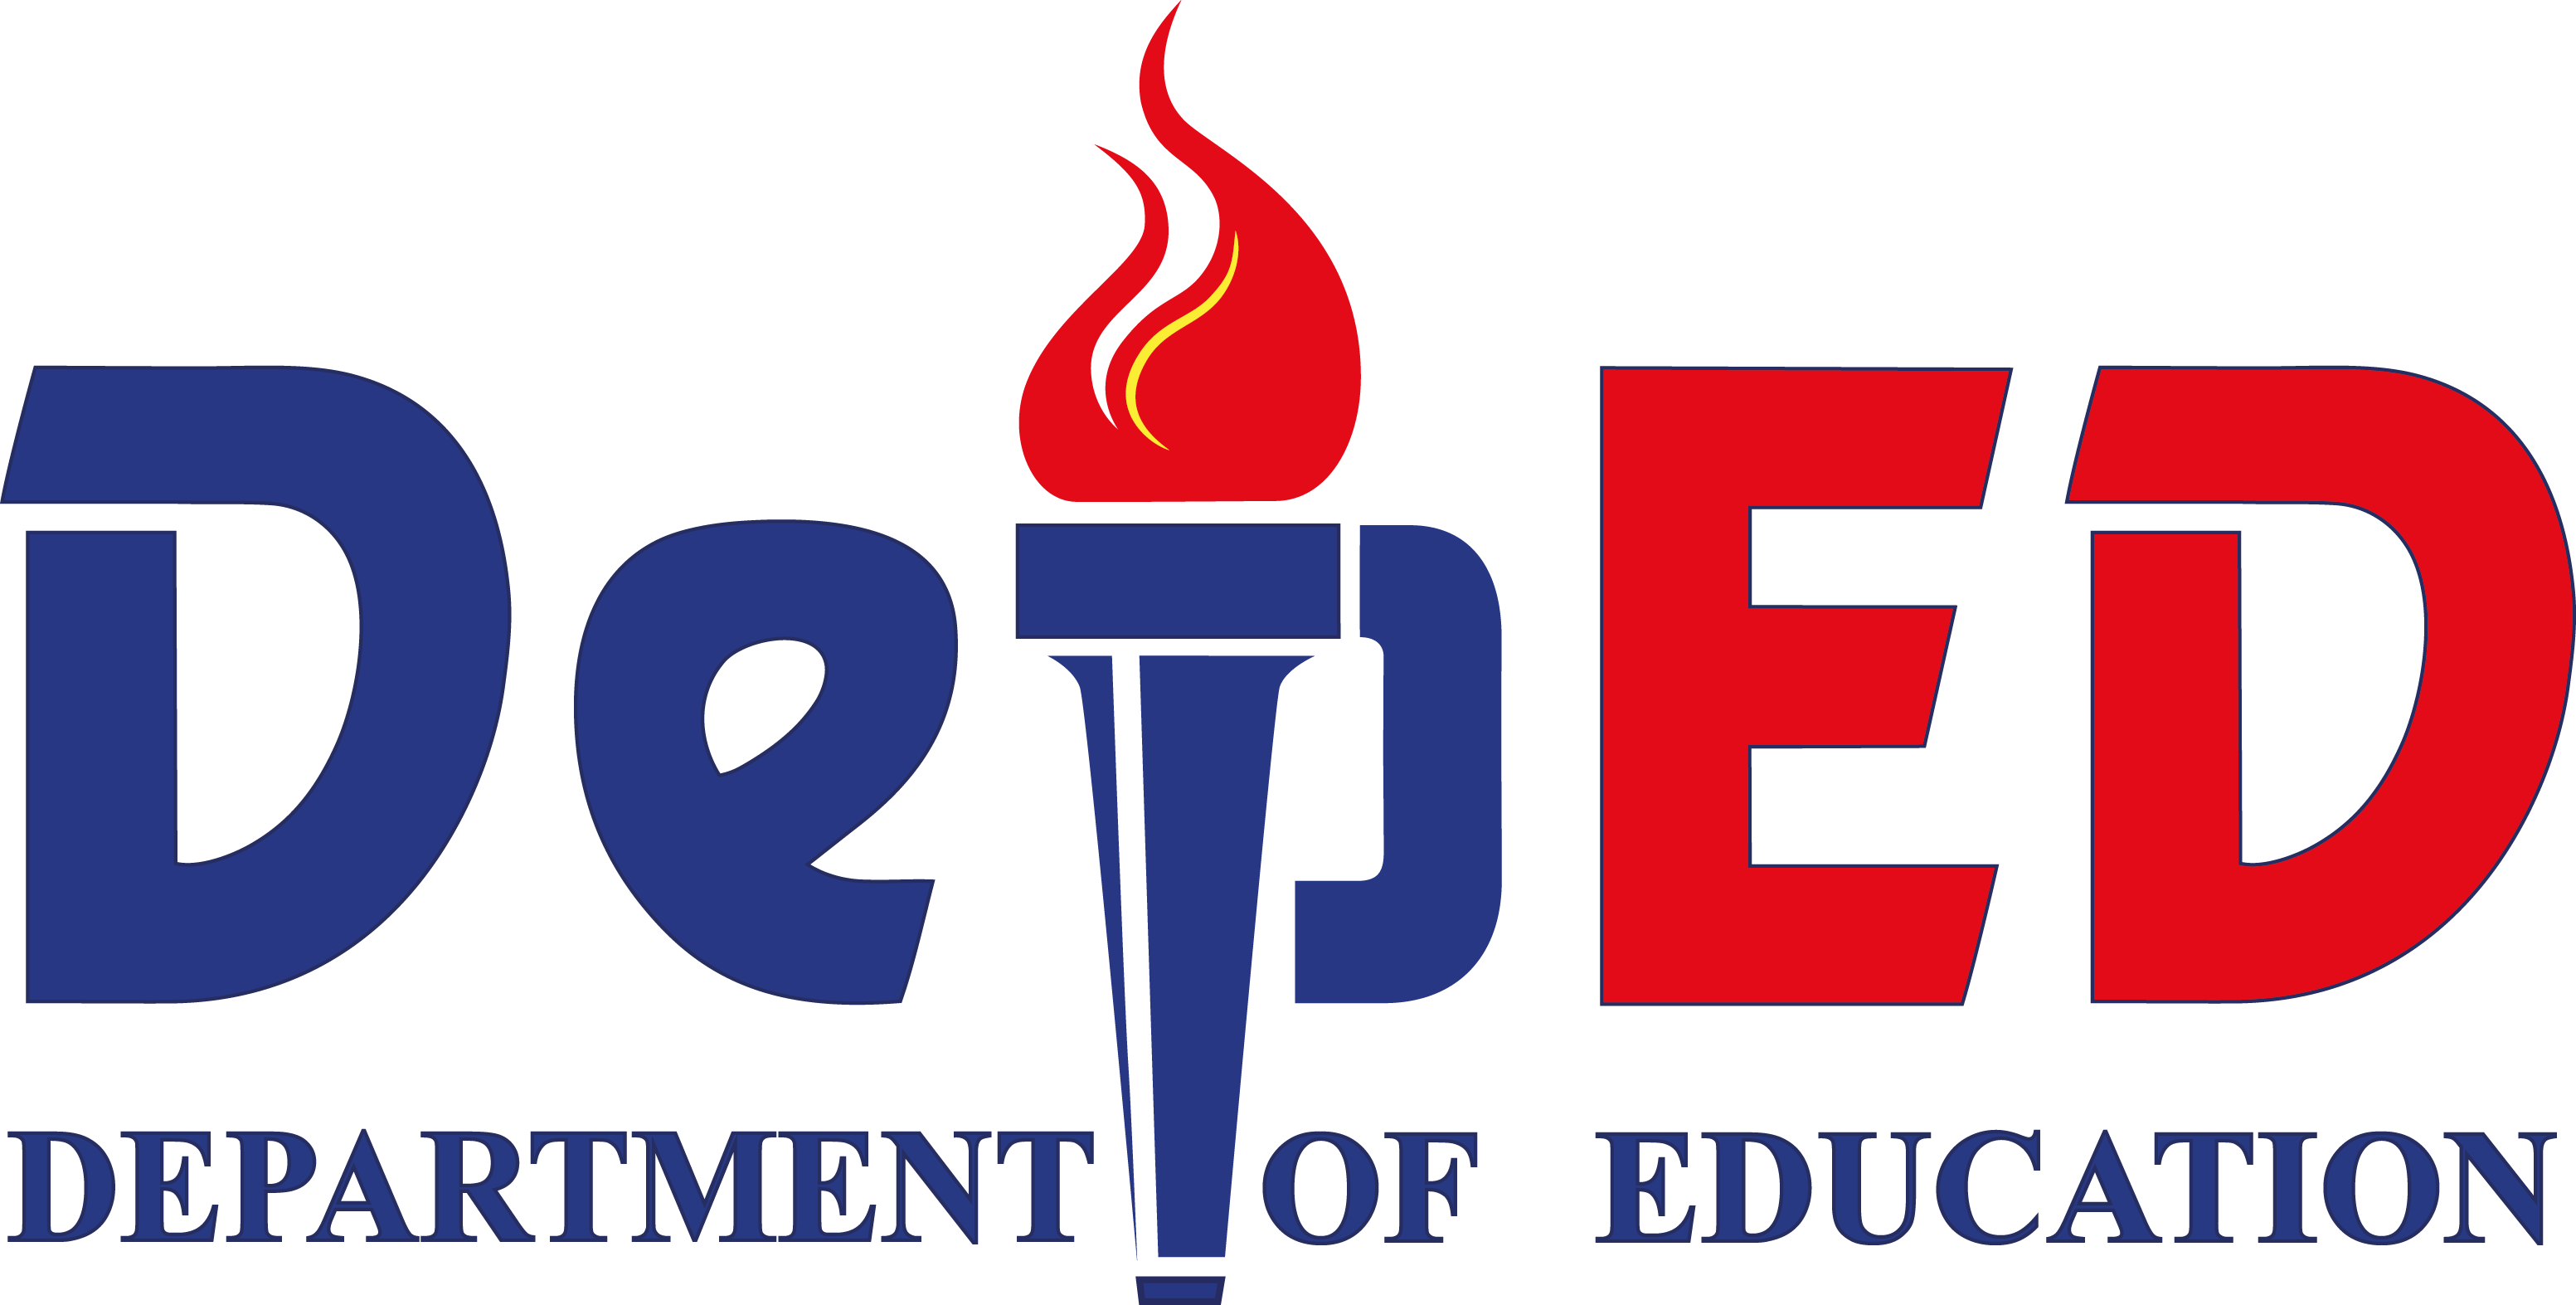 Toyota National City >> DepEd Logo [Department of Education Philippines - deped.gov.ph] Free Vector Download